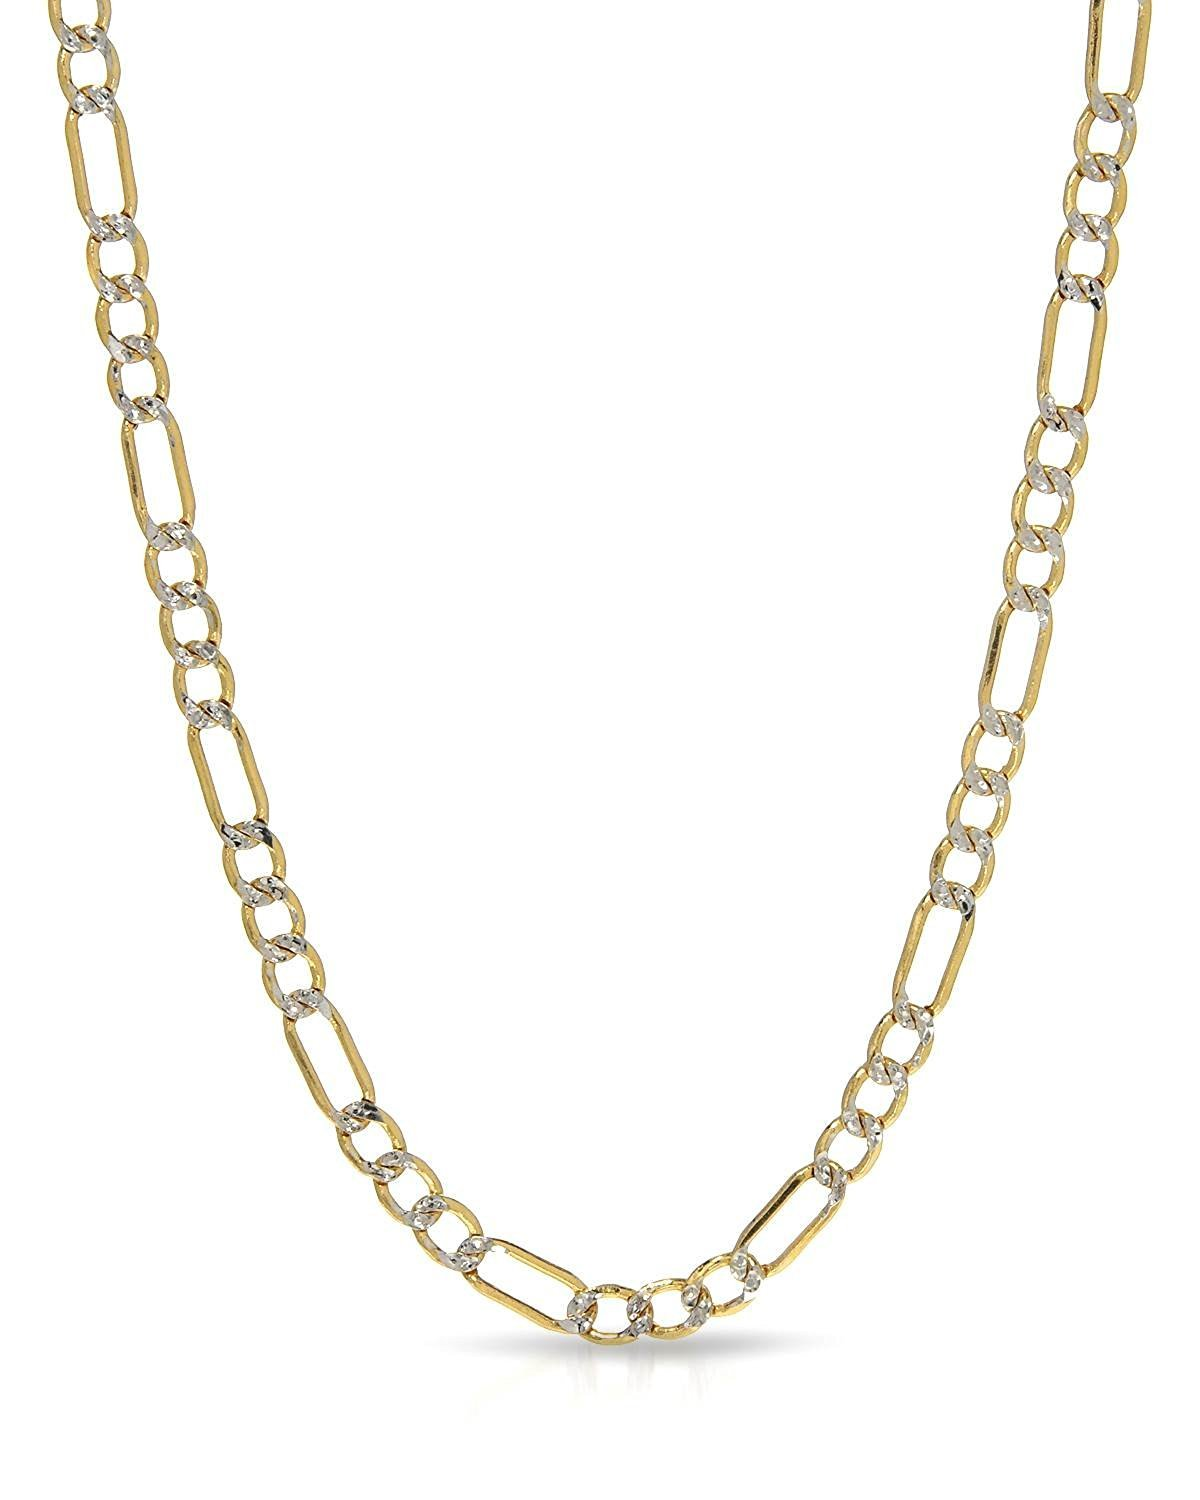 MCS Jewelry 10 Karat Two Tone SOLID Yellow & White Gold Figaro Chain Necklace 3.5 MM(Length: 18''-24'')